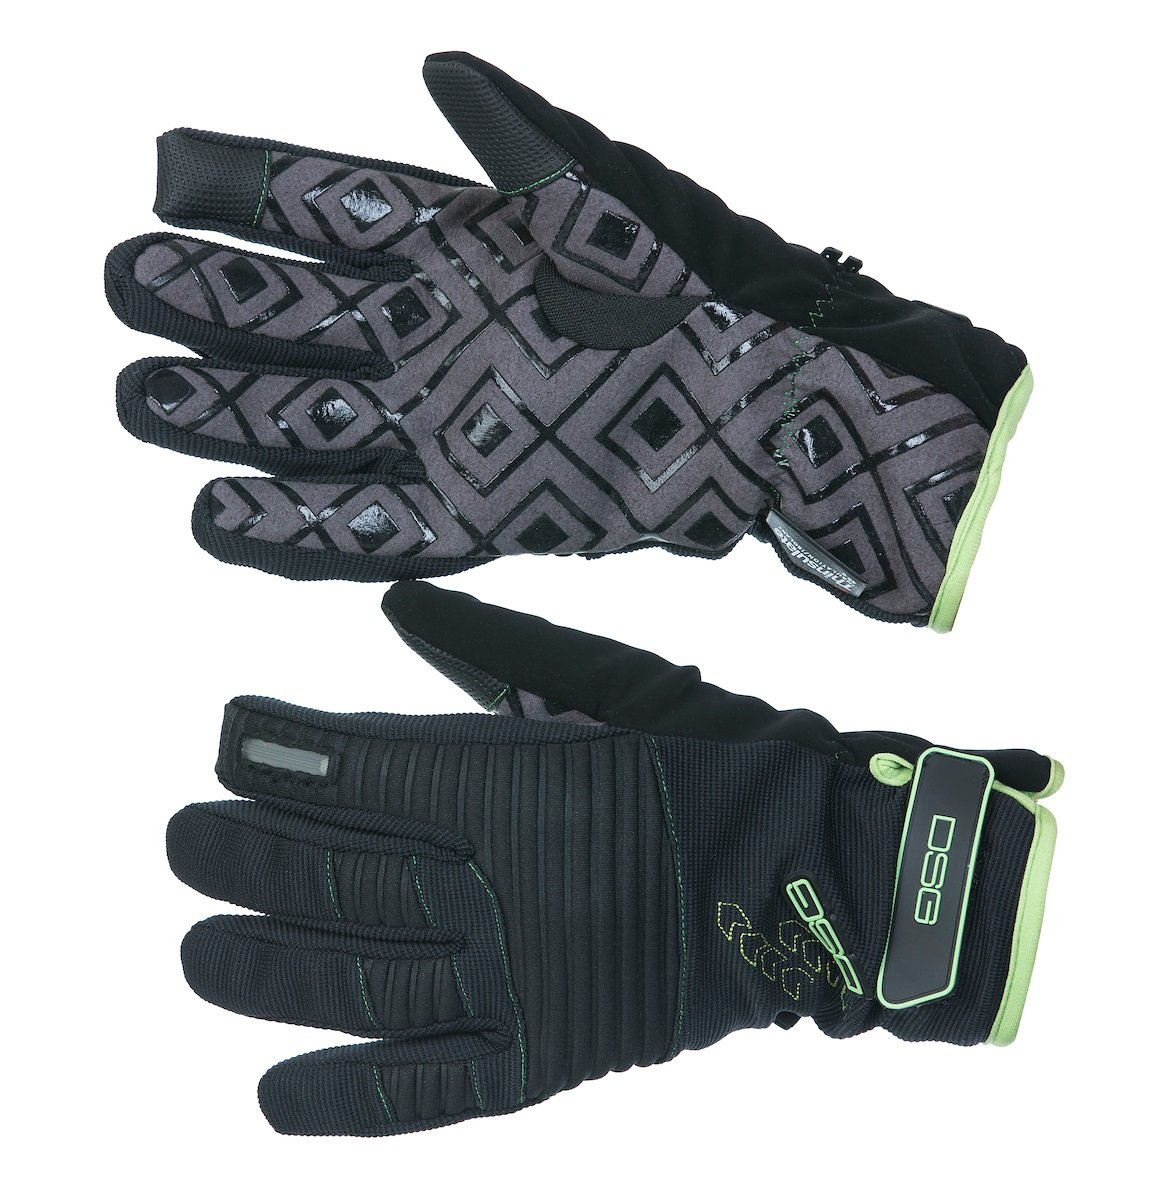 DSG Outerwear Versa-Style Gloves, Green Apple, X-Small